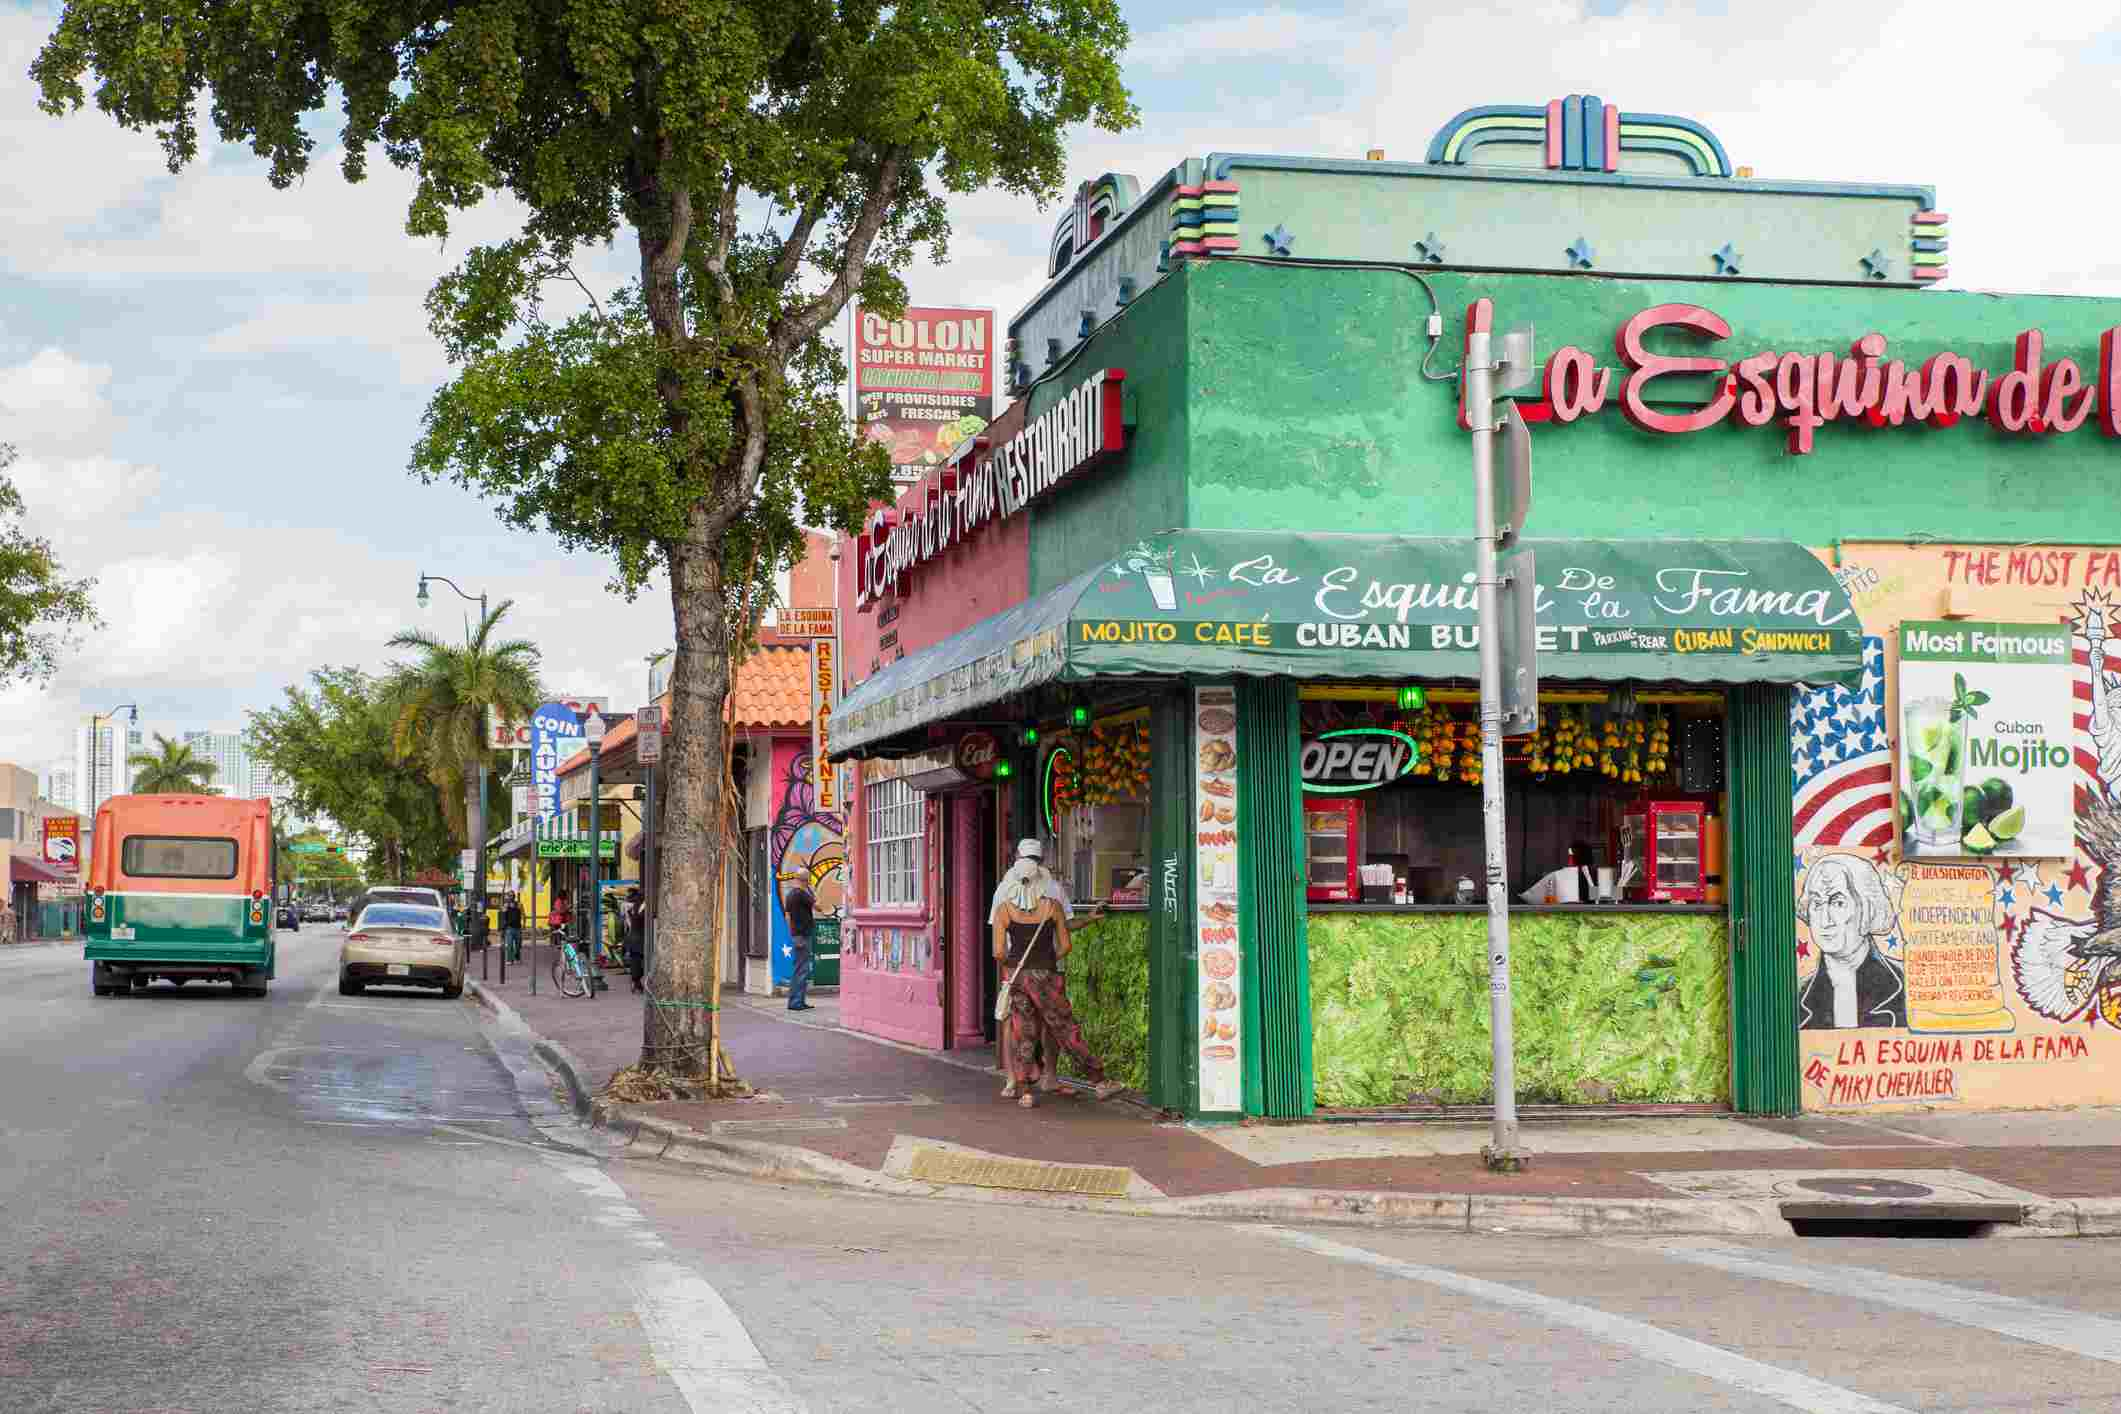 The Top Things To Do In Little Havana Miami